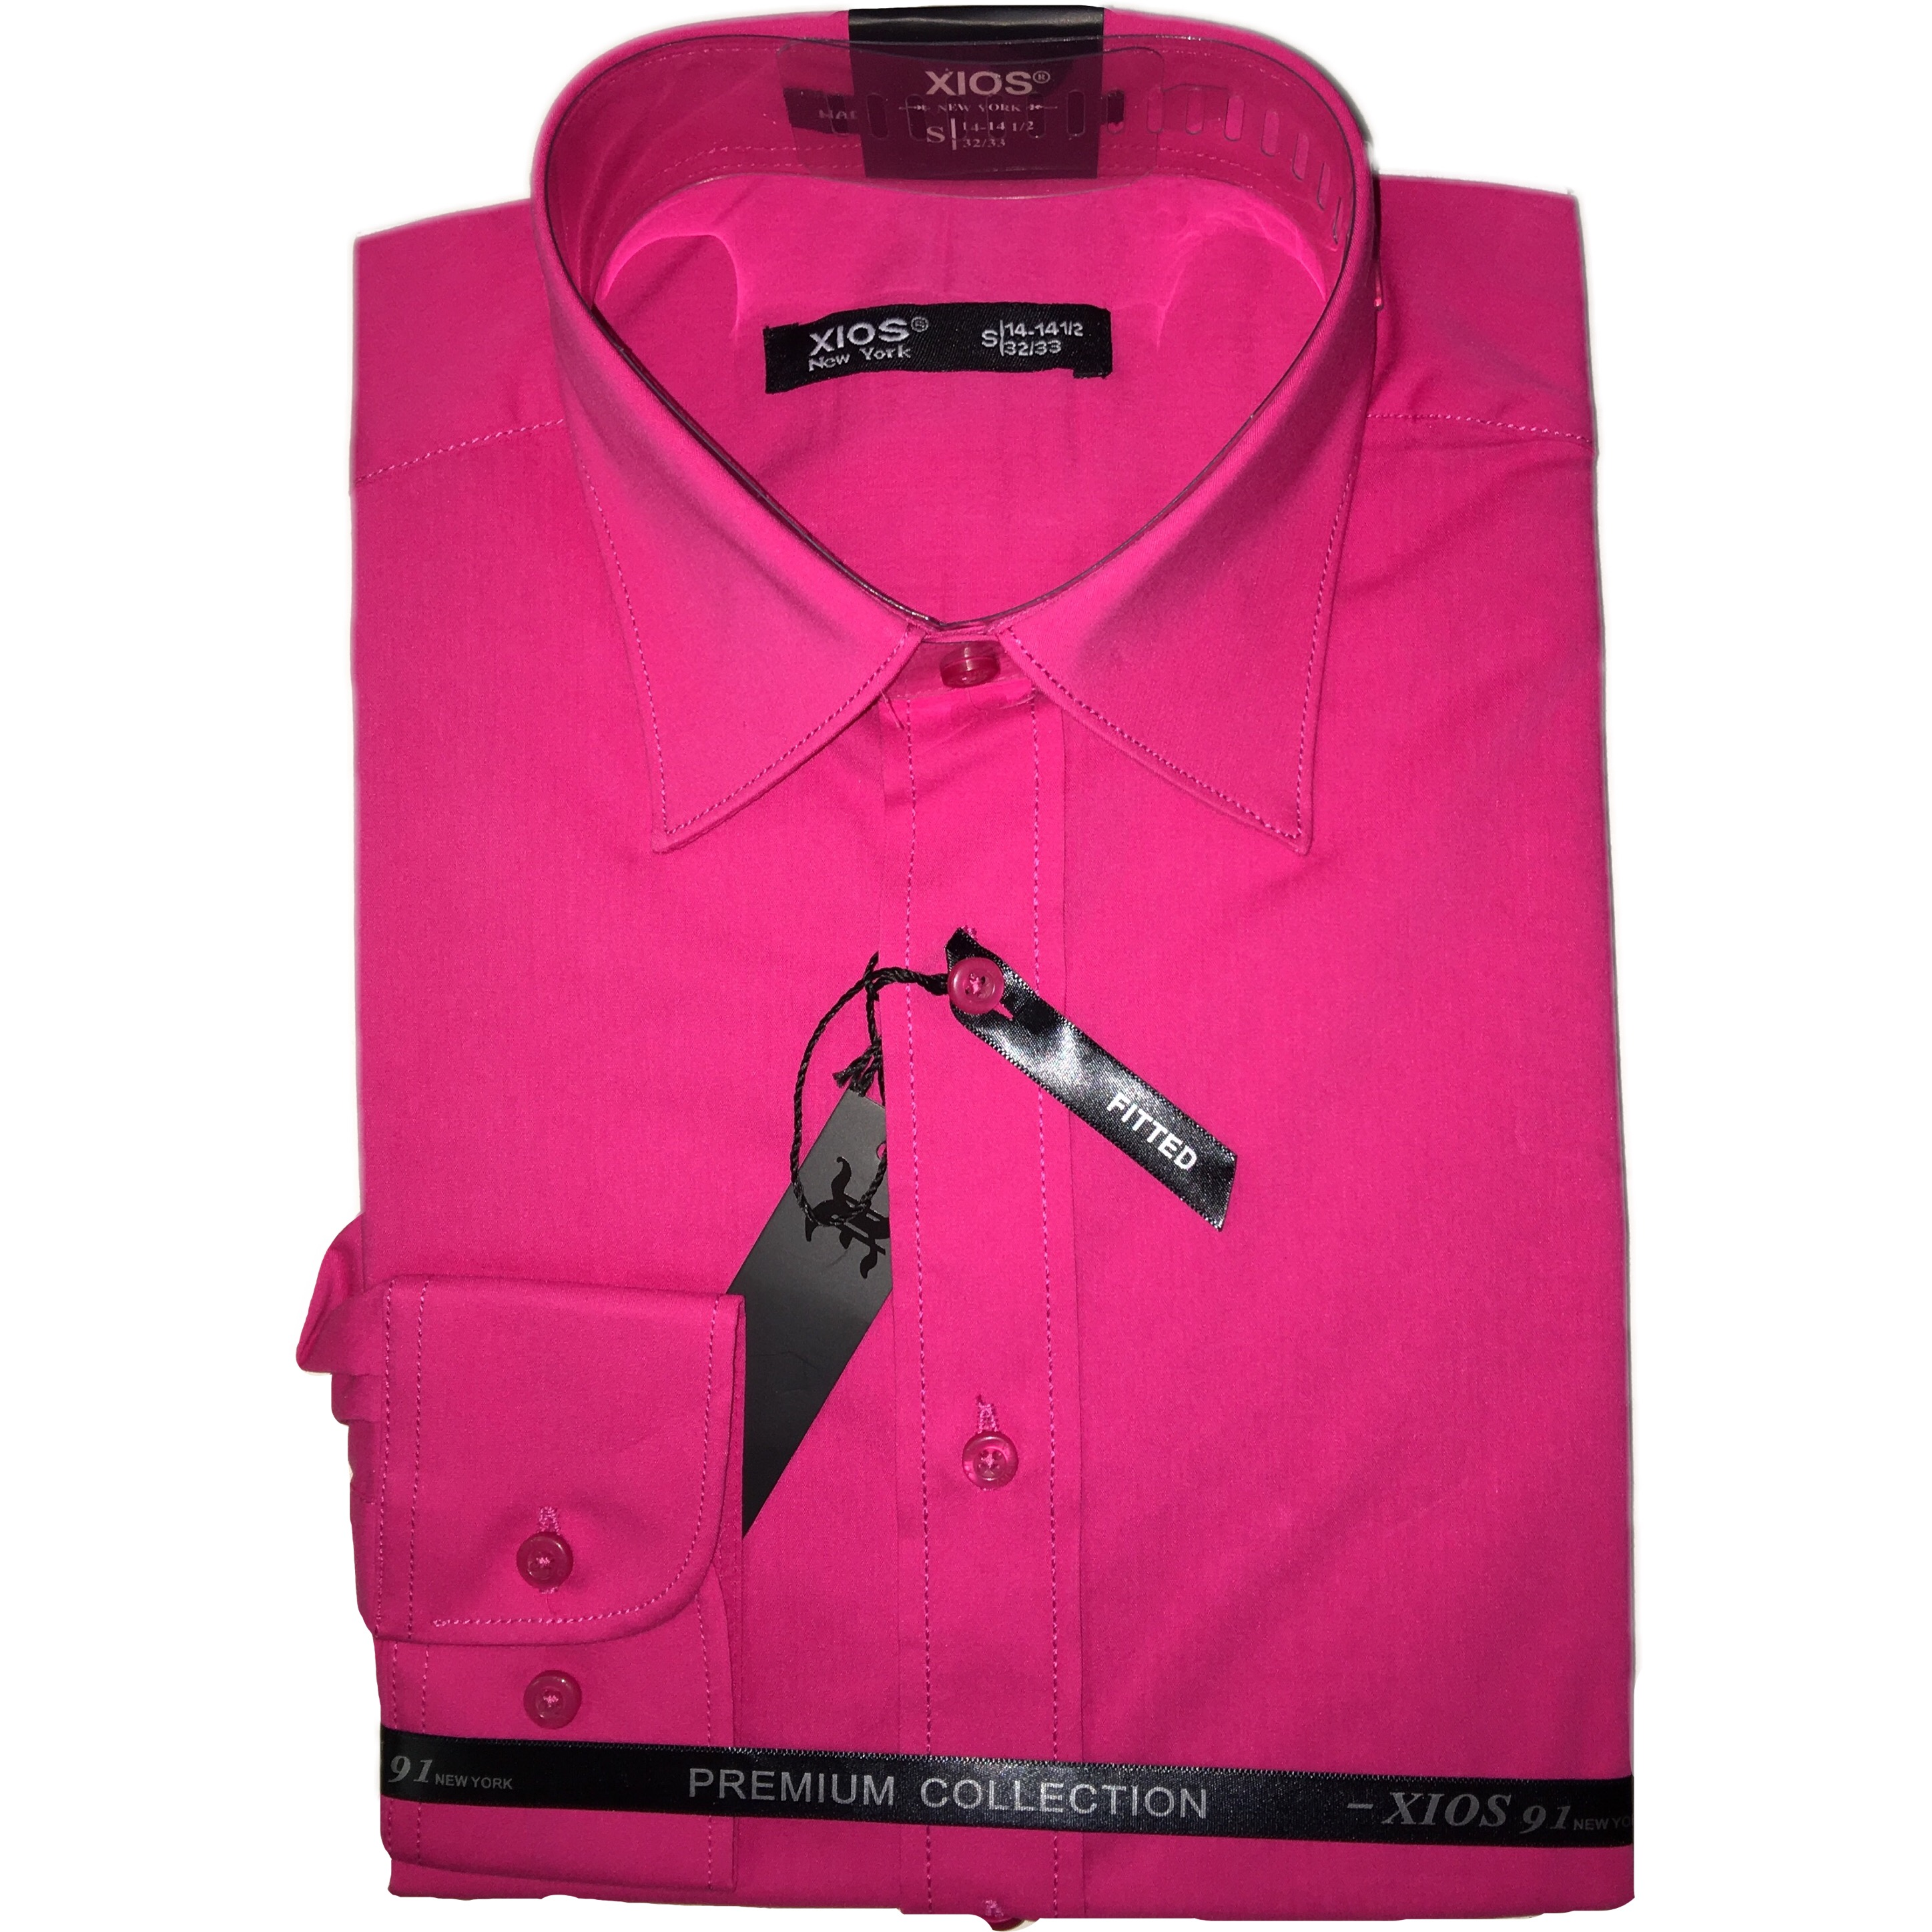 68b75a091ad Xios Formal Shirts For Men s – ETP Fashion